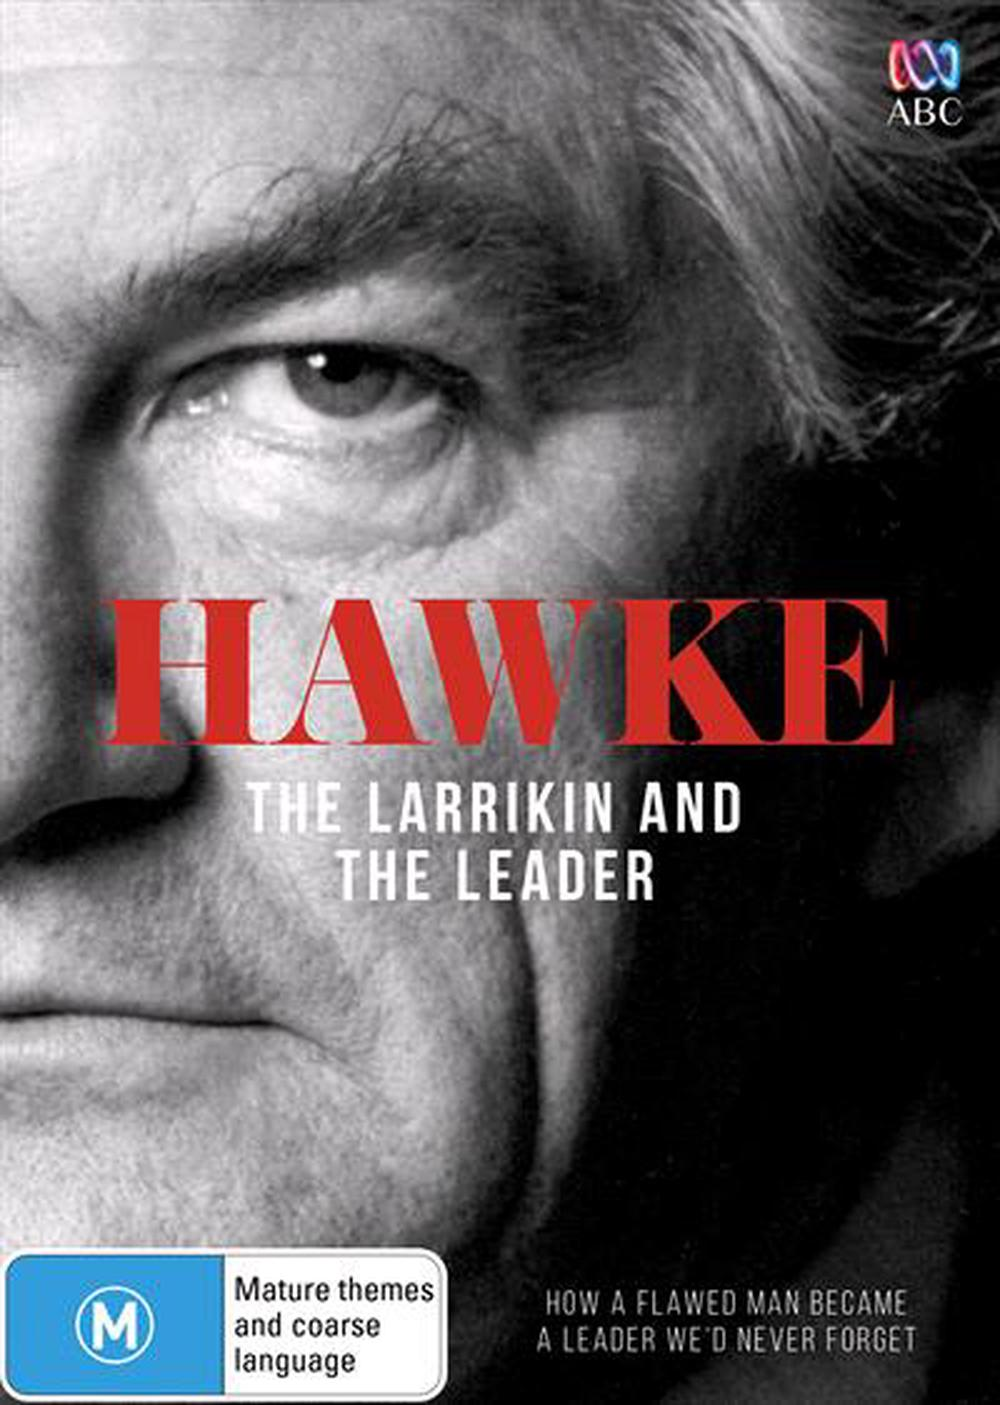 Hawke - Larrikin And The Leader, The - DVD Region 4 Free Shipping!